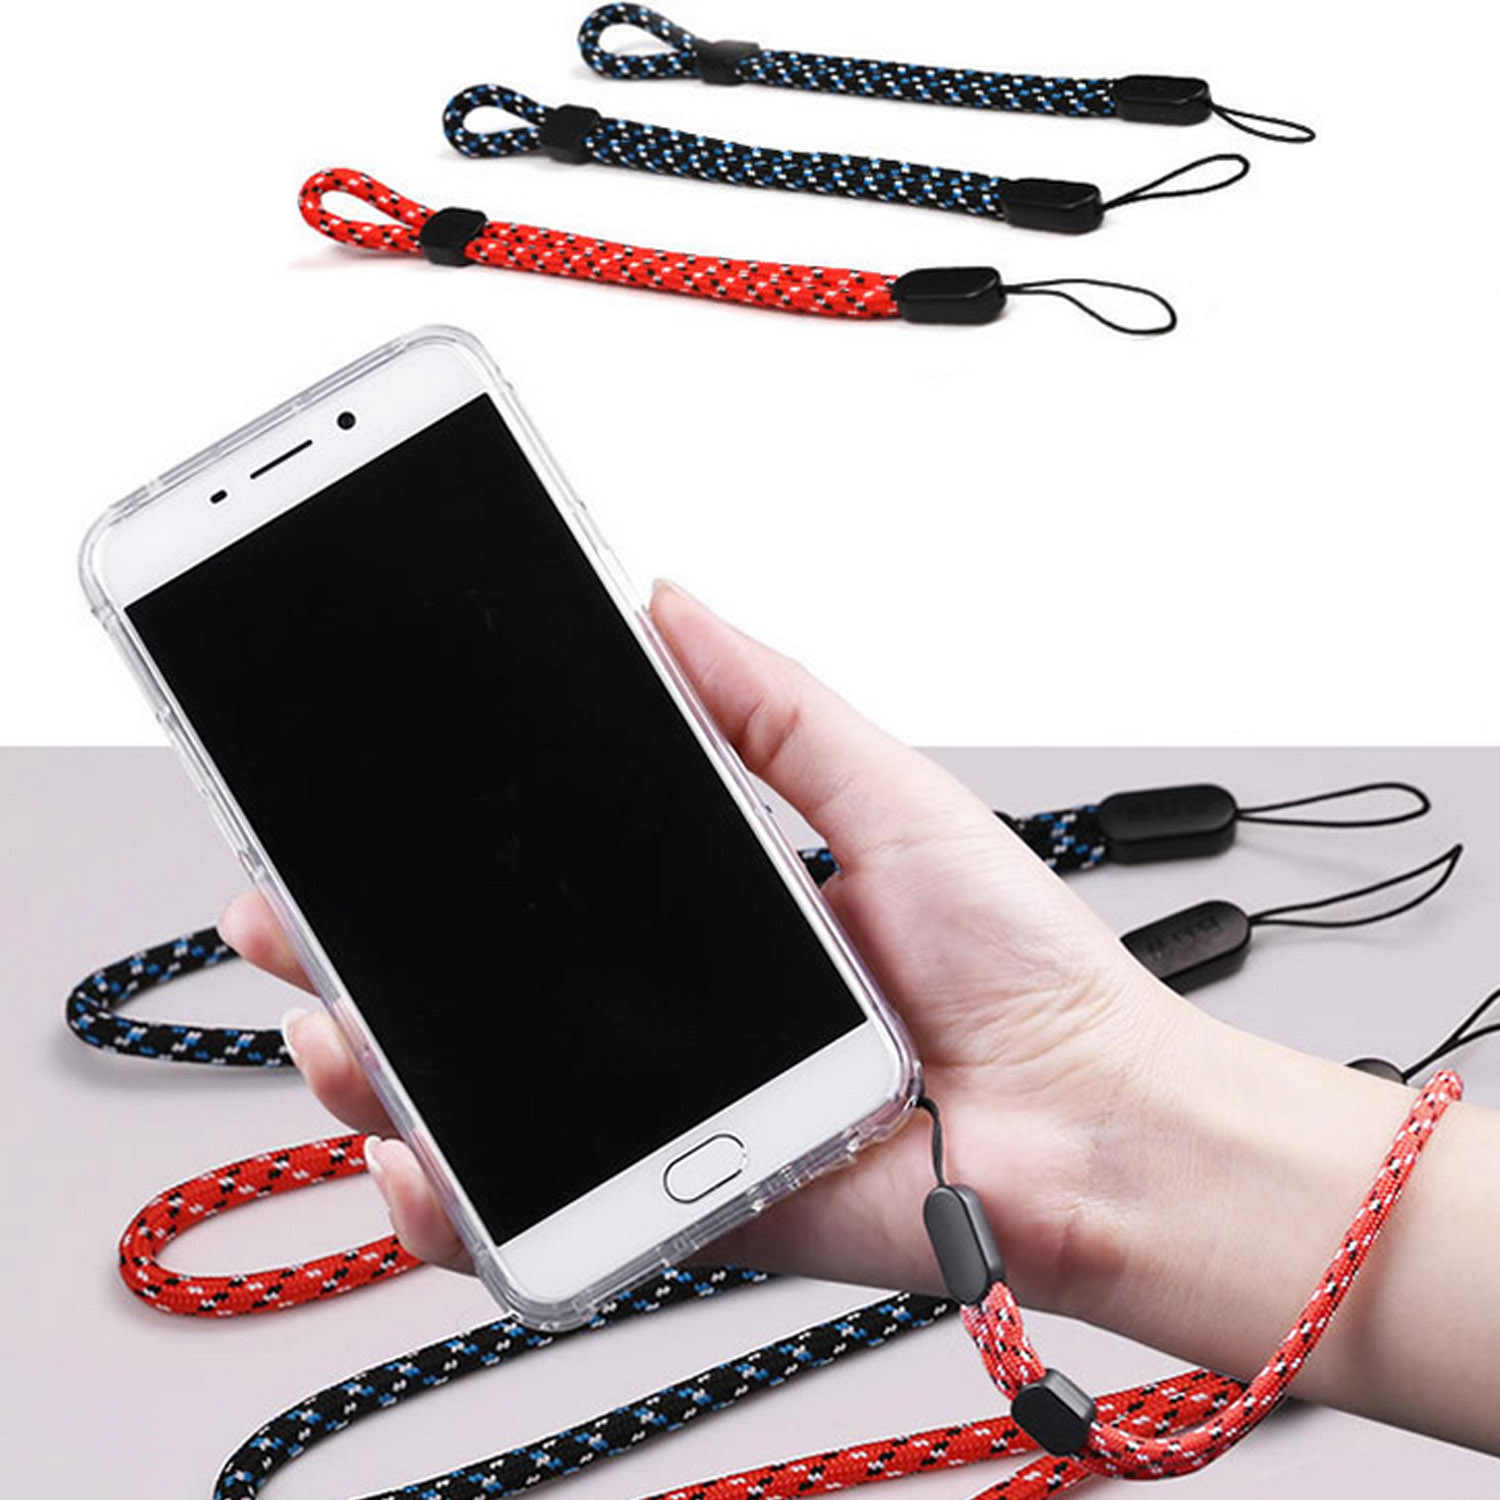 Besegad 5 Pcs Fashion Adjustable Anti-Lost Pergelangan Tangan Tali Lanyard untuk Ponsel USB Flash Drive Kunci Pesona kamera Nama: